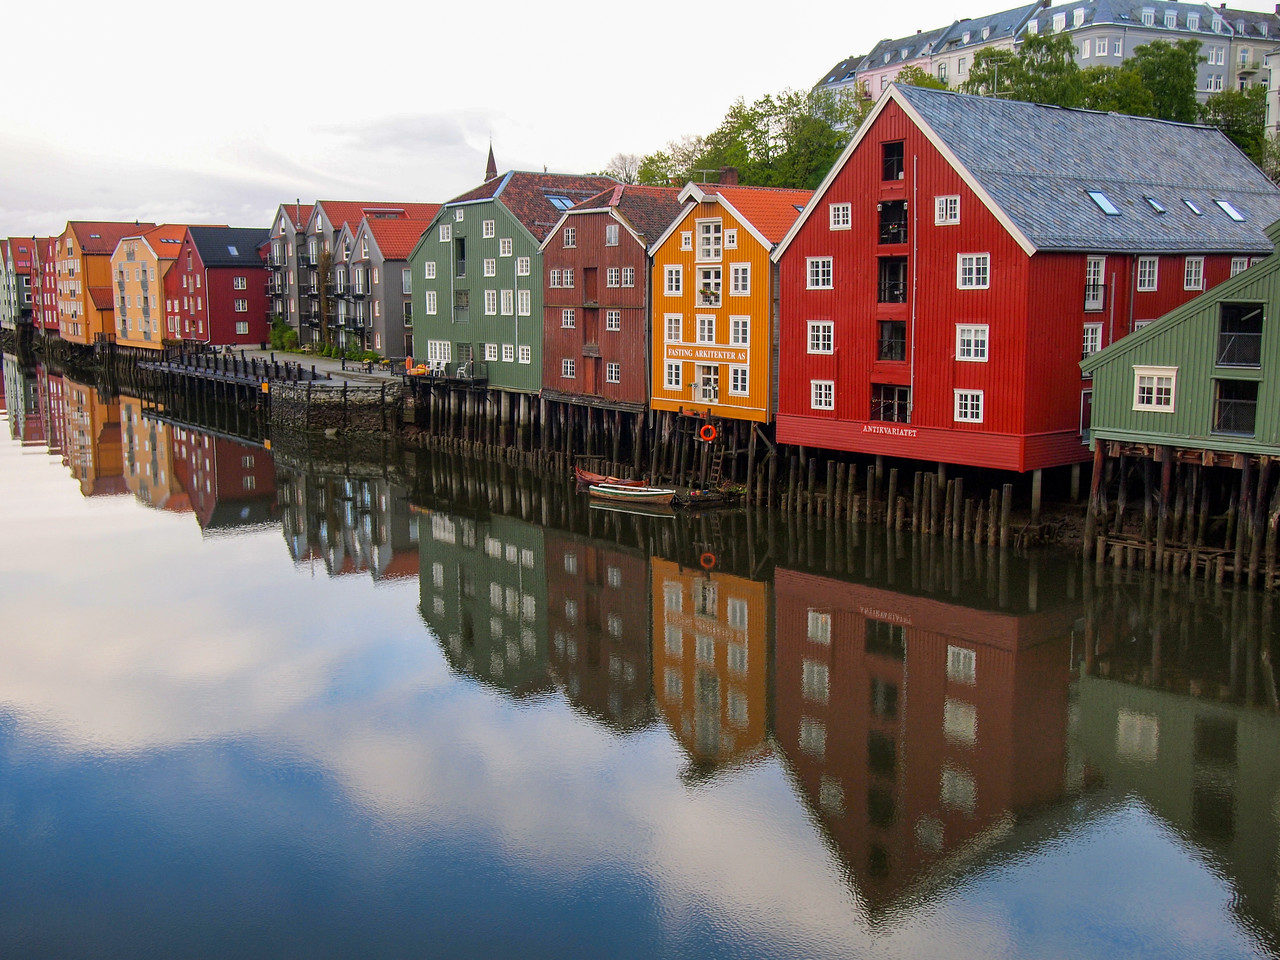 Buildings in Trondheim, Norway